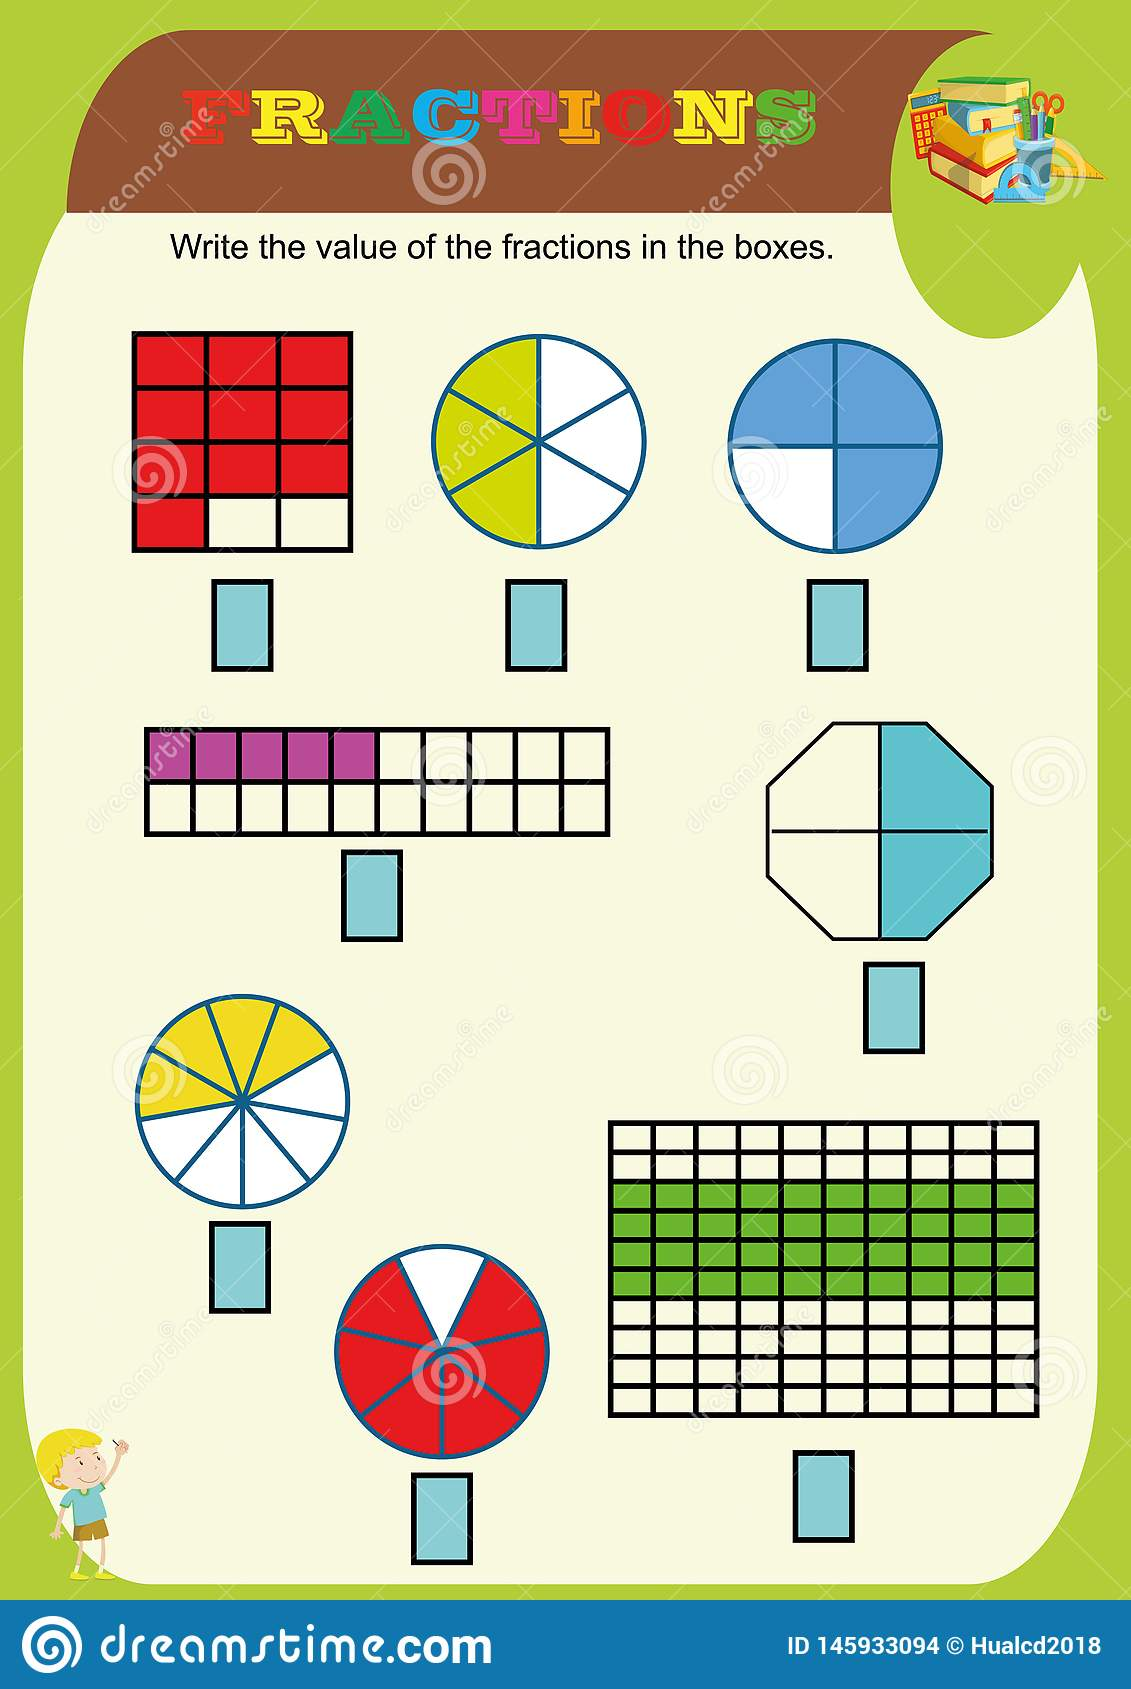 Circle The Correct Fraction Mathematics Math Worksheet For Kidsactions Addition Printable